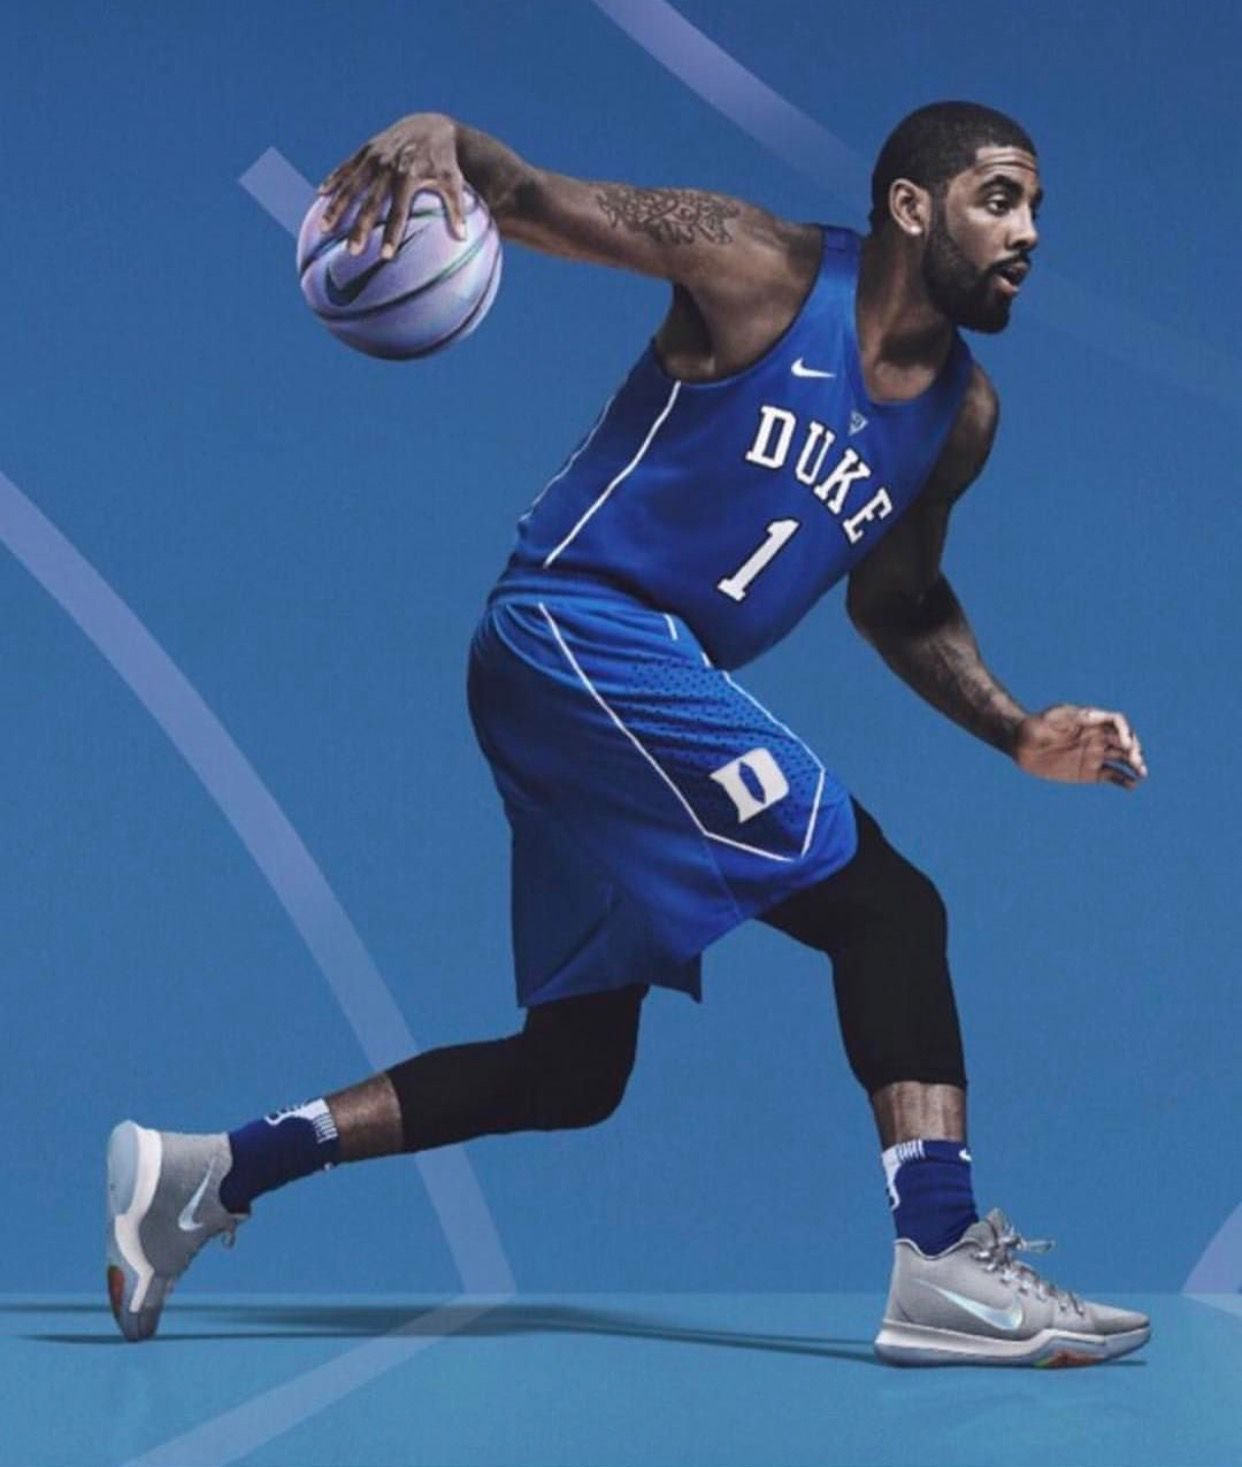 Kyrie Irving: One and done to No. 1 — The Undefeated |Kyrie Irving College